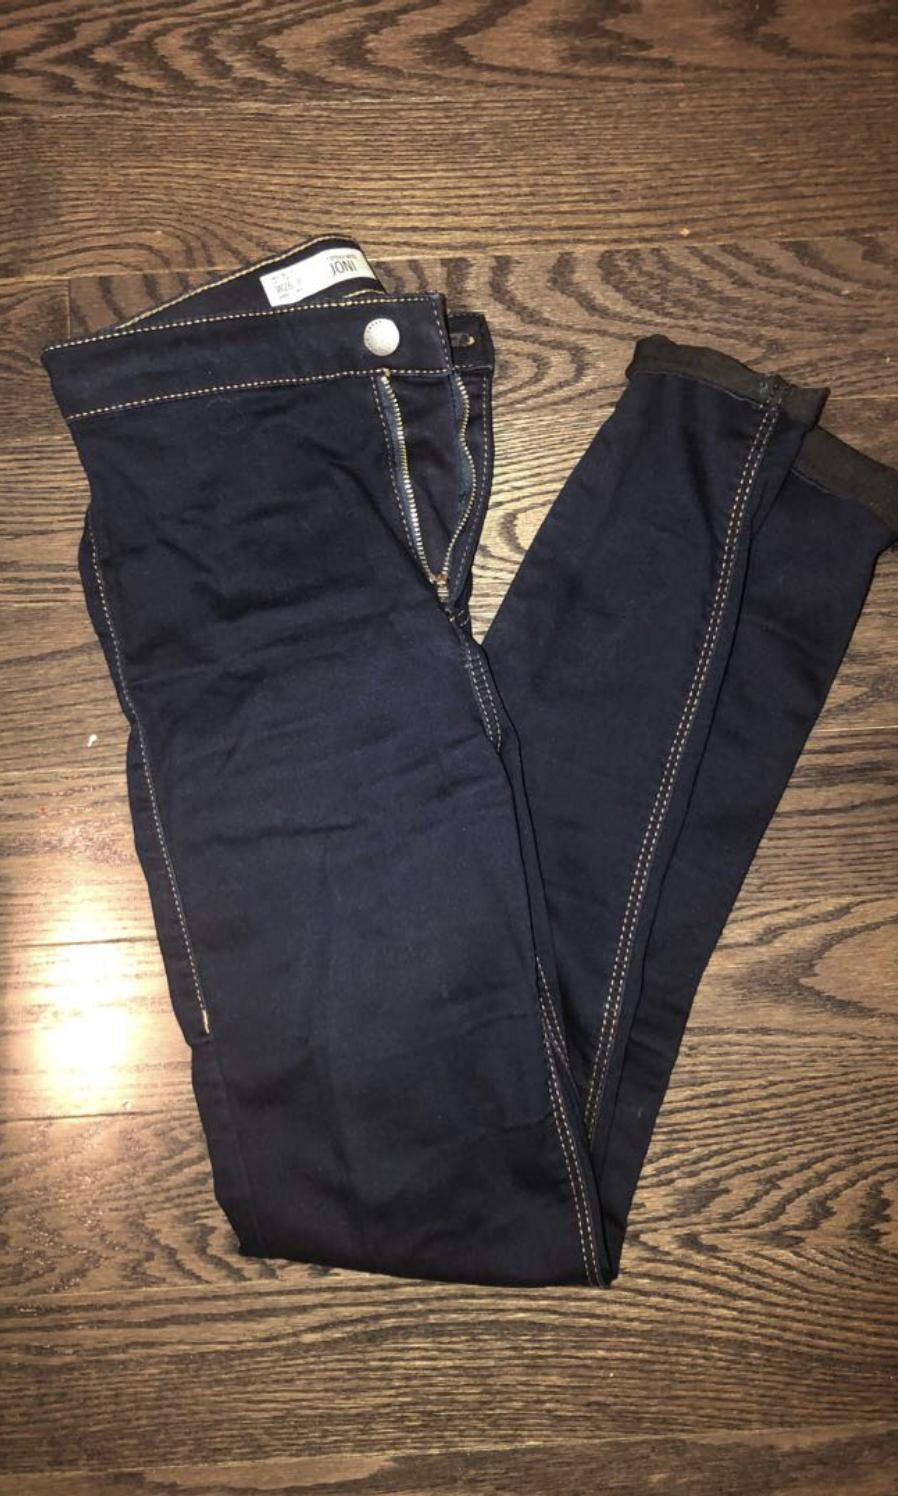 Topshop high waisted Joni skinnies size 26